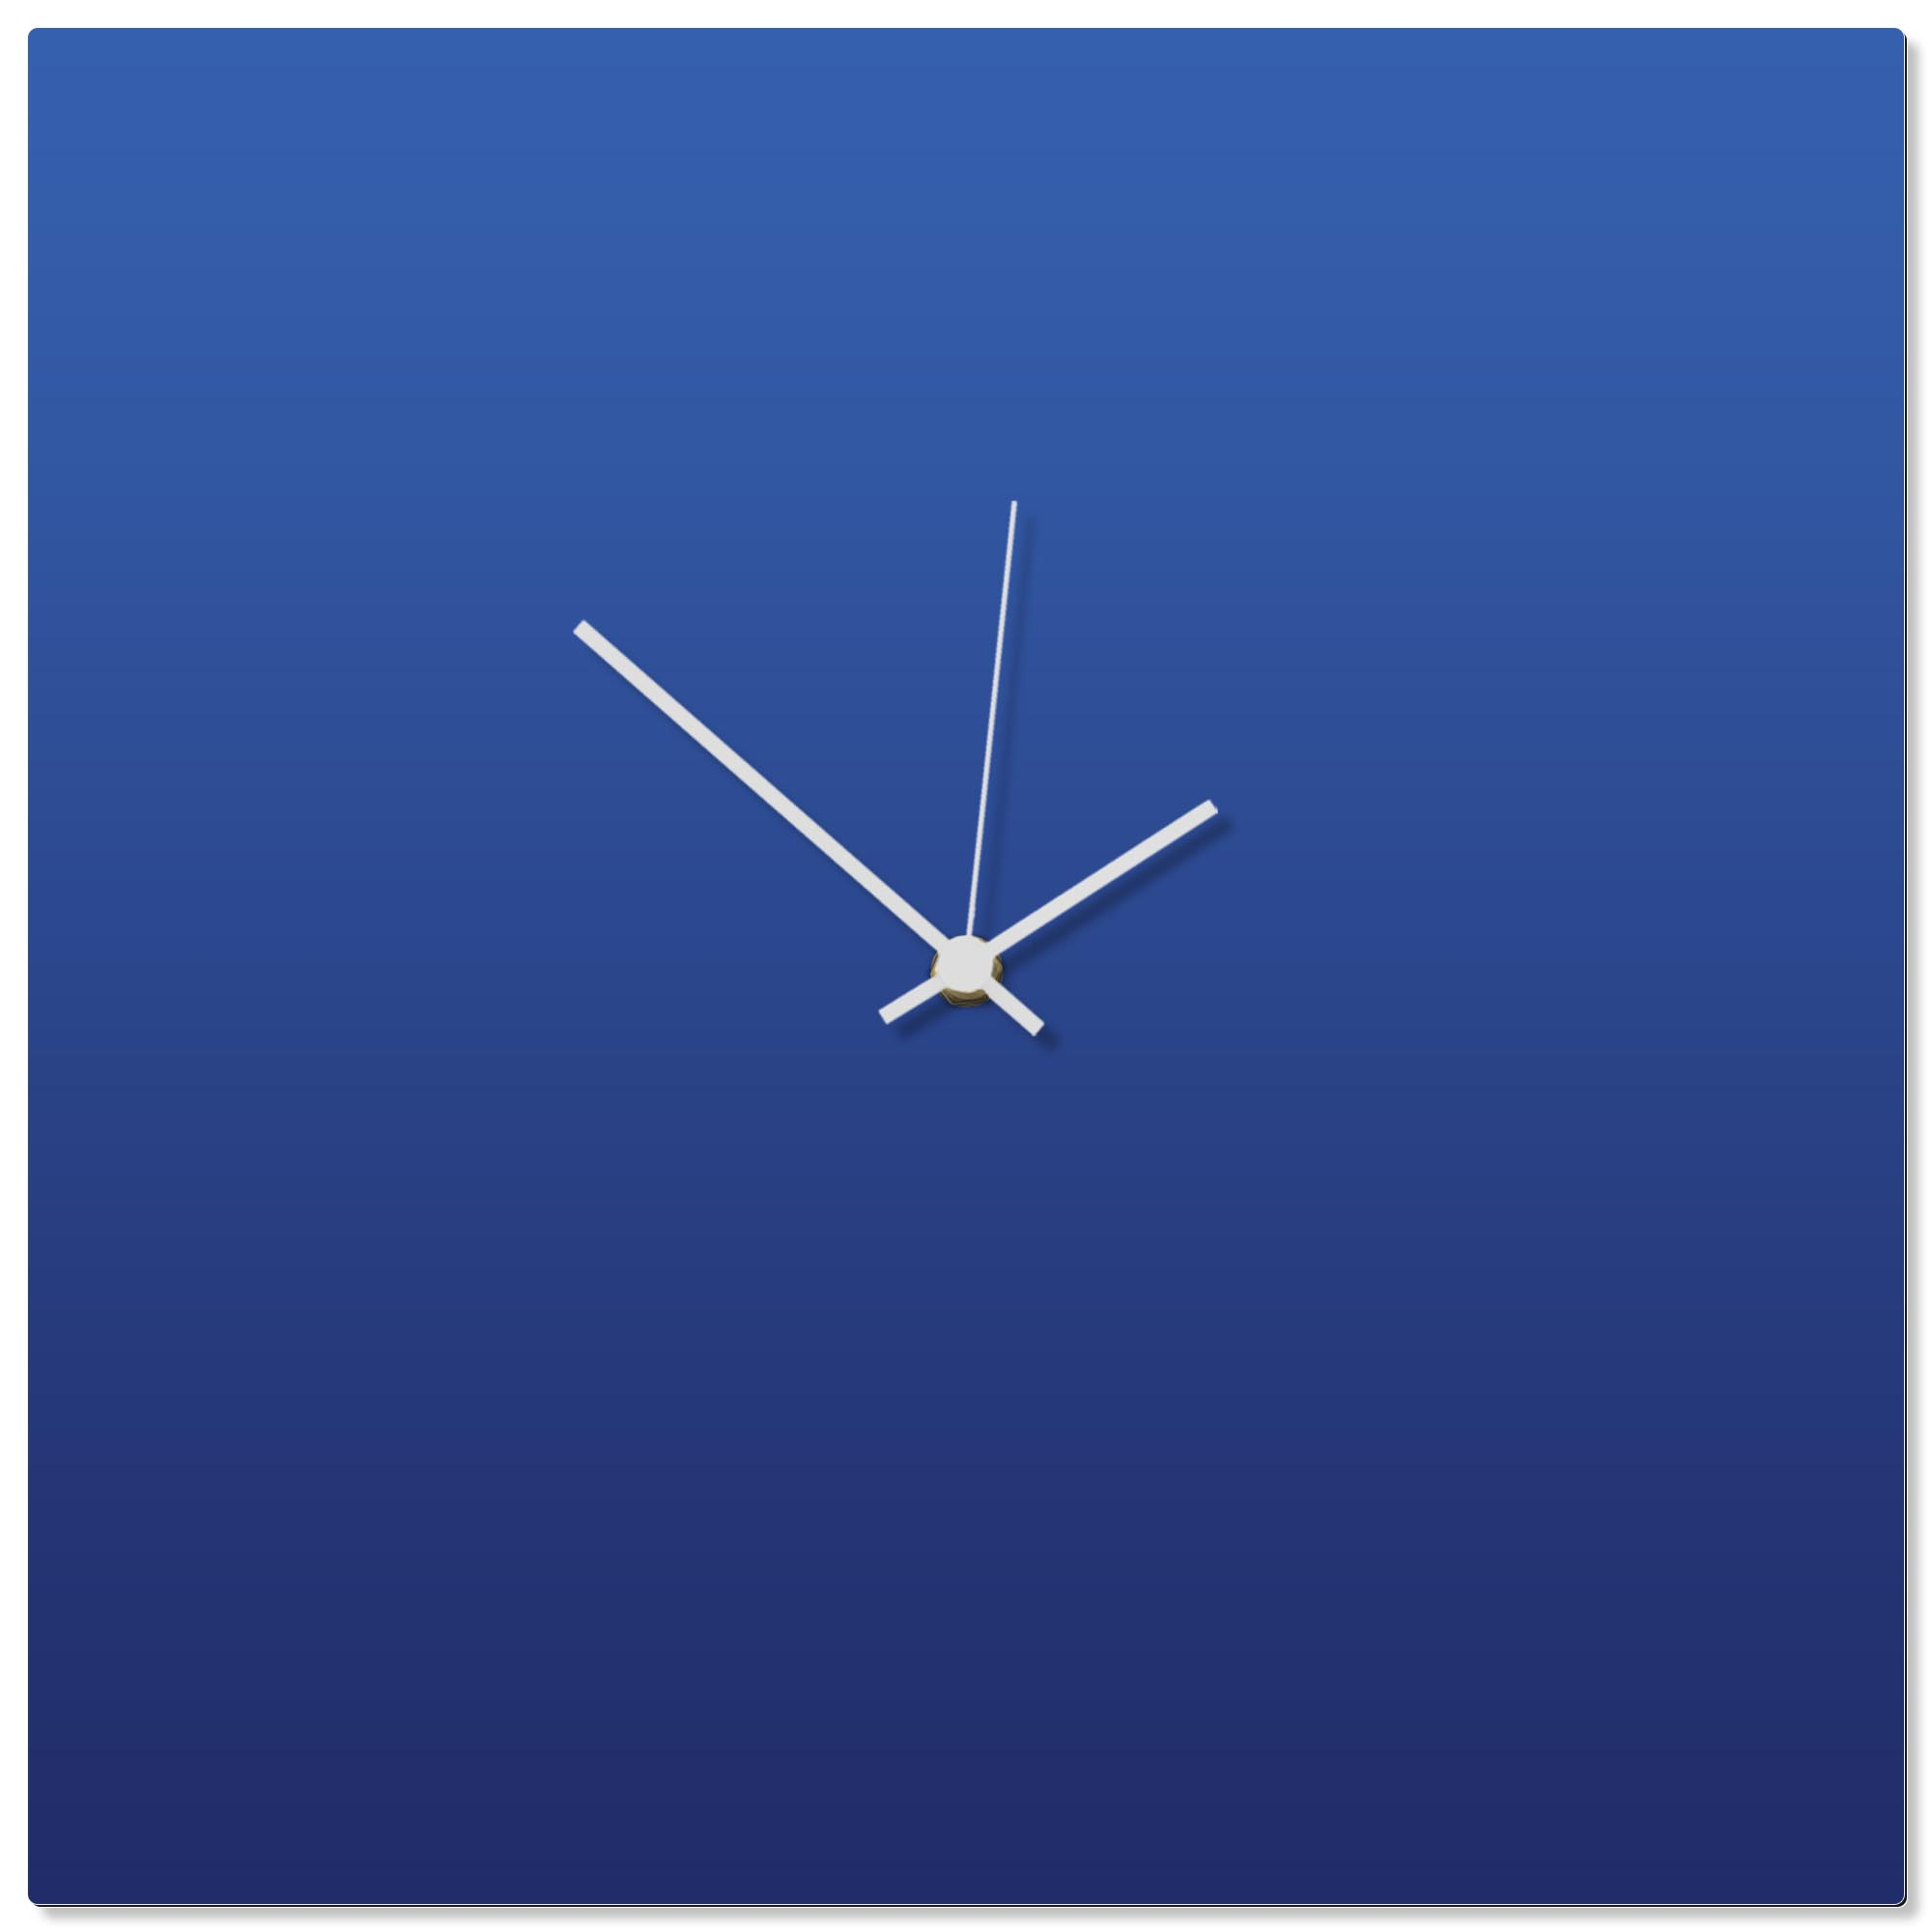 Blueout White Square Clock 16x16in. Aluminum Polymetal